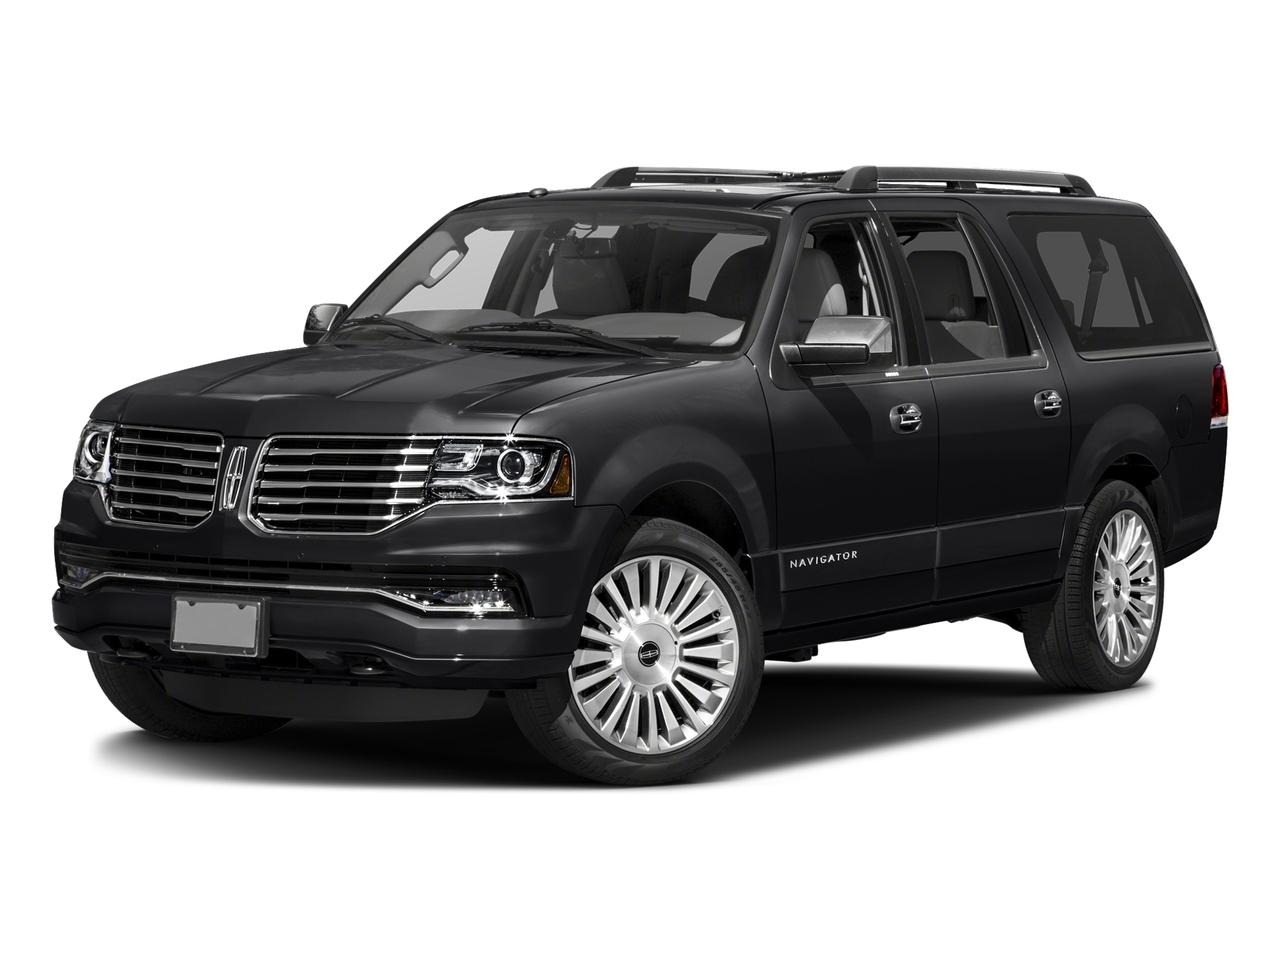 2017 LINCOLN Navigator L Vehicle Photo in Quakertown, PA 18951-1403